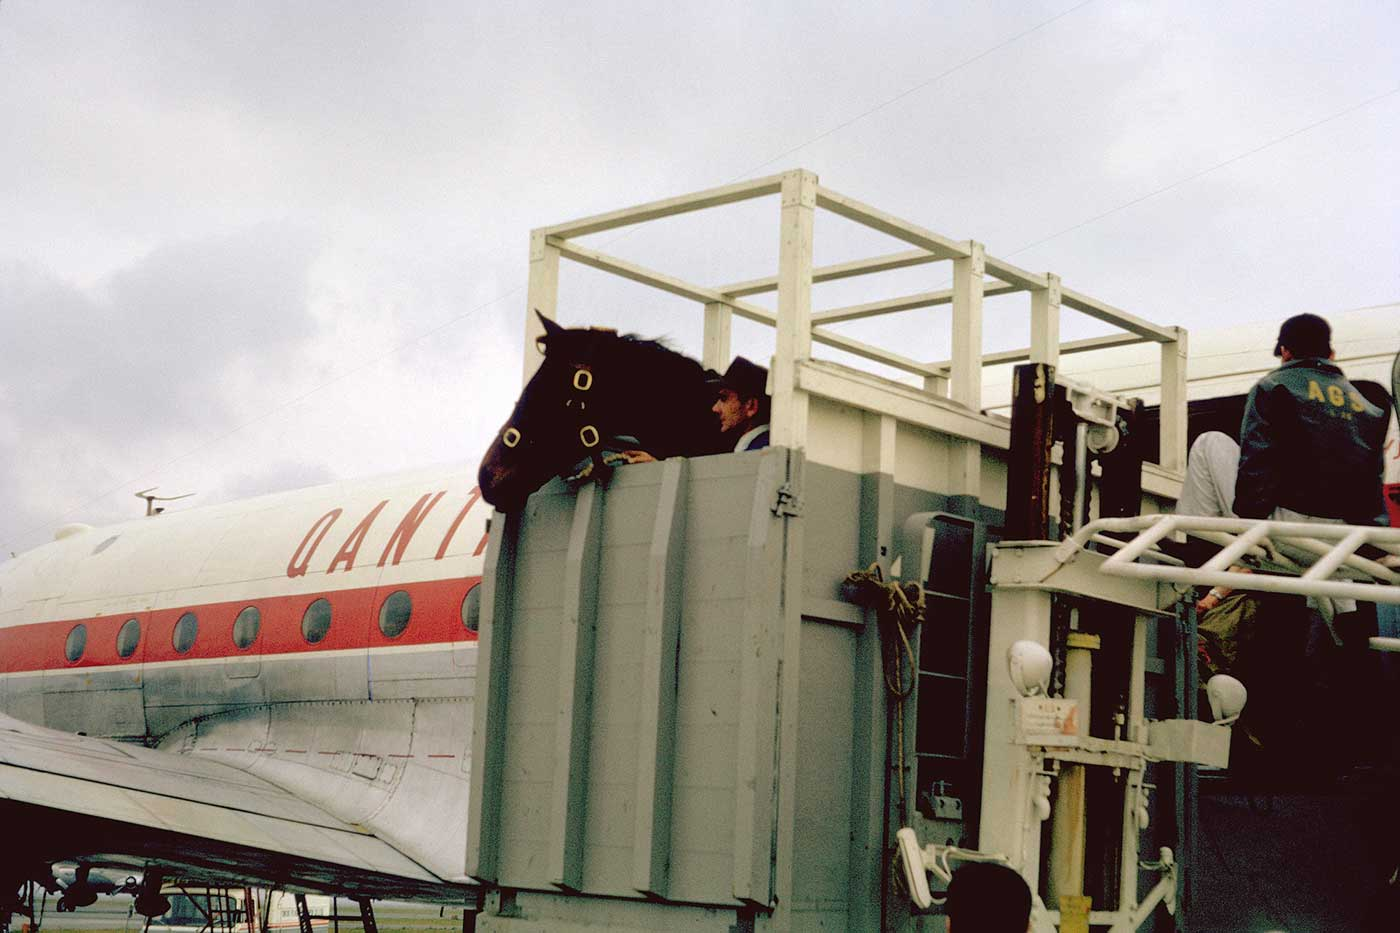 Neale helping to load Mirrabooka for the flight from Heathrow to Rome, 1960. - click to view larger image